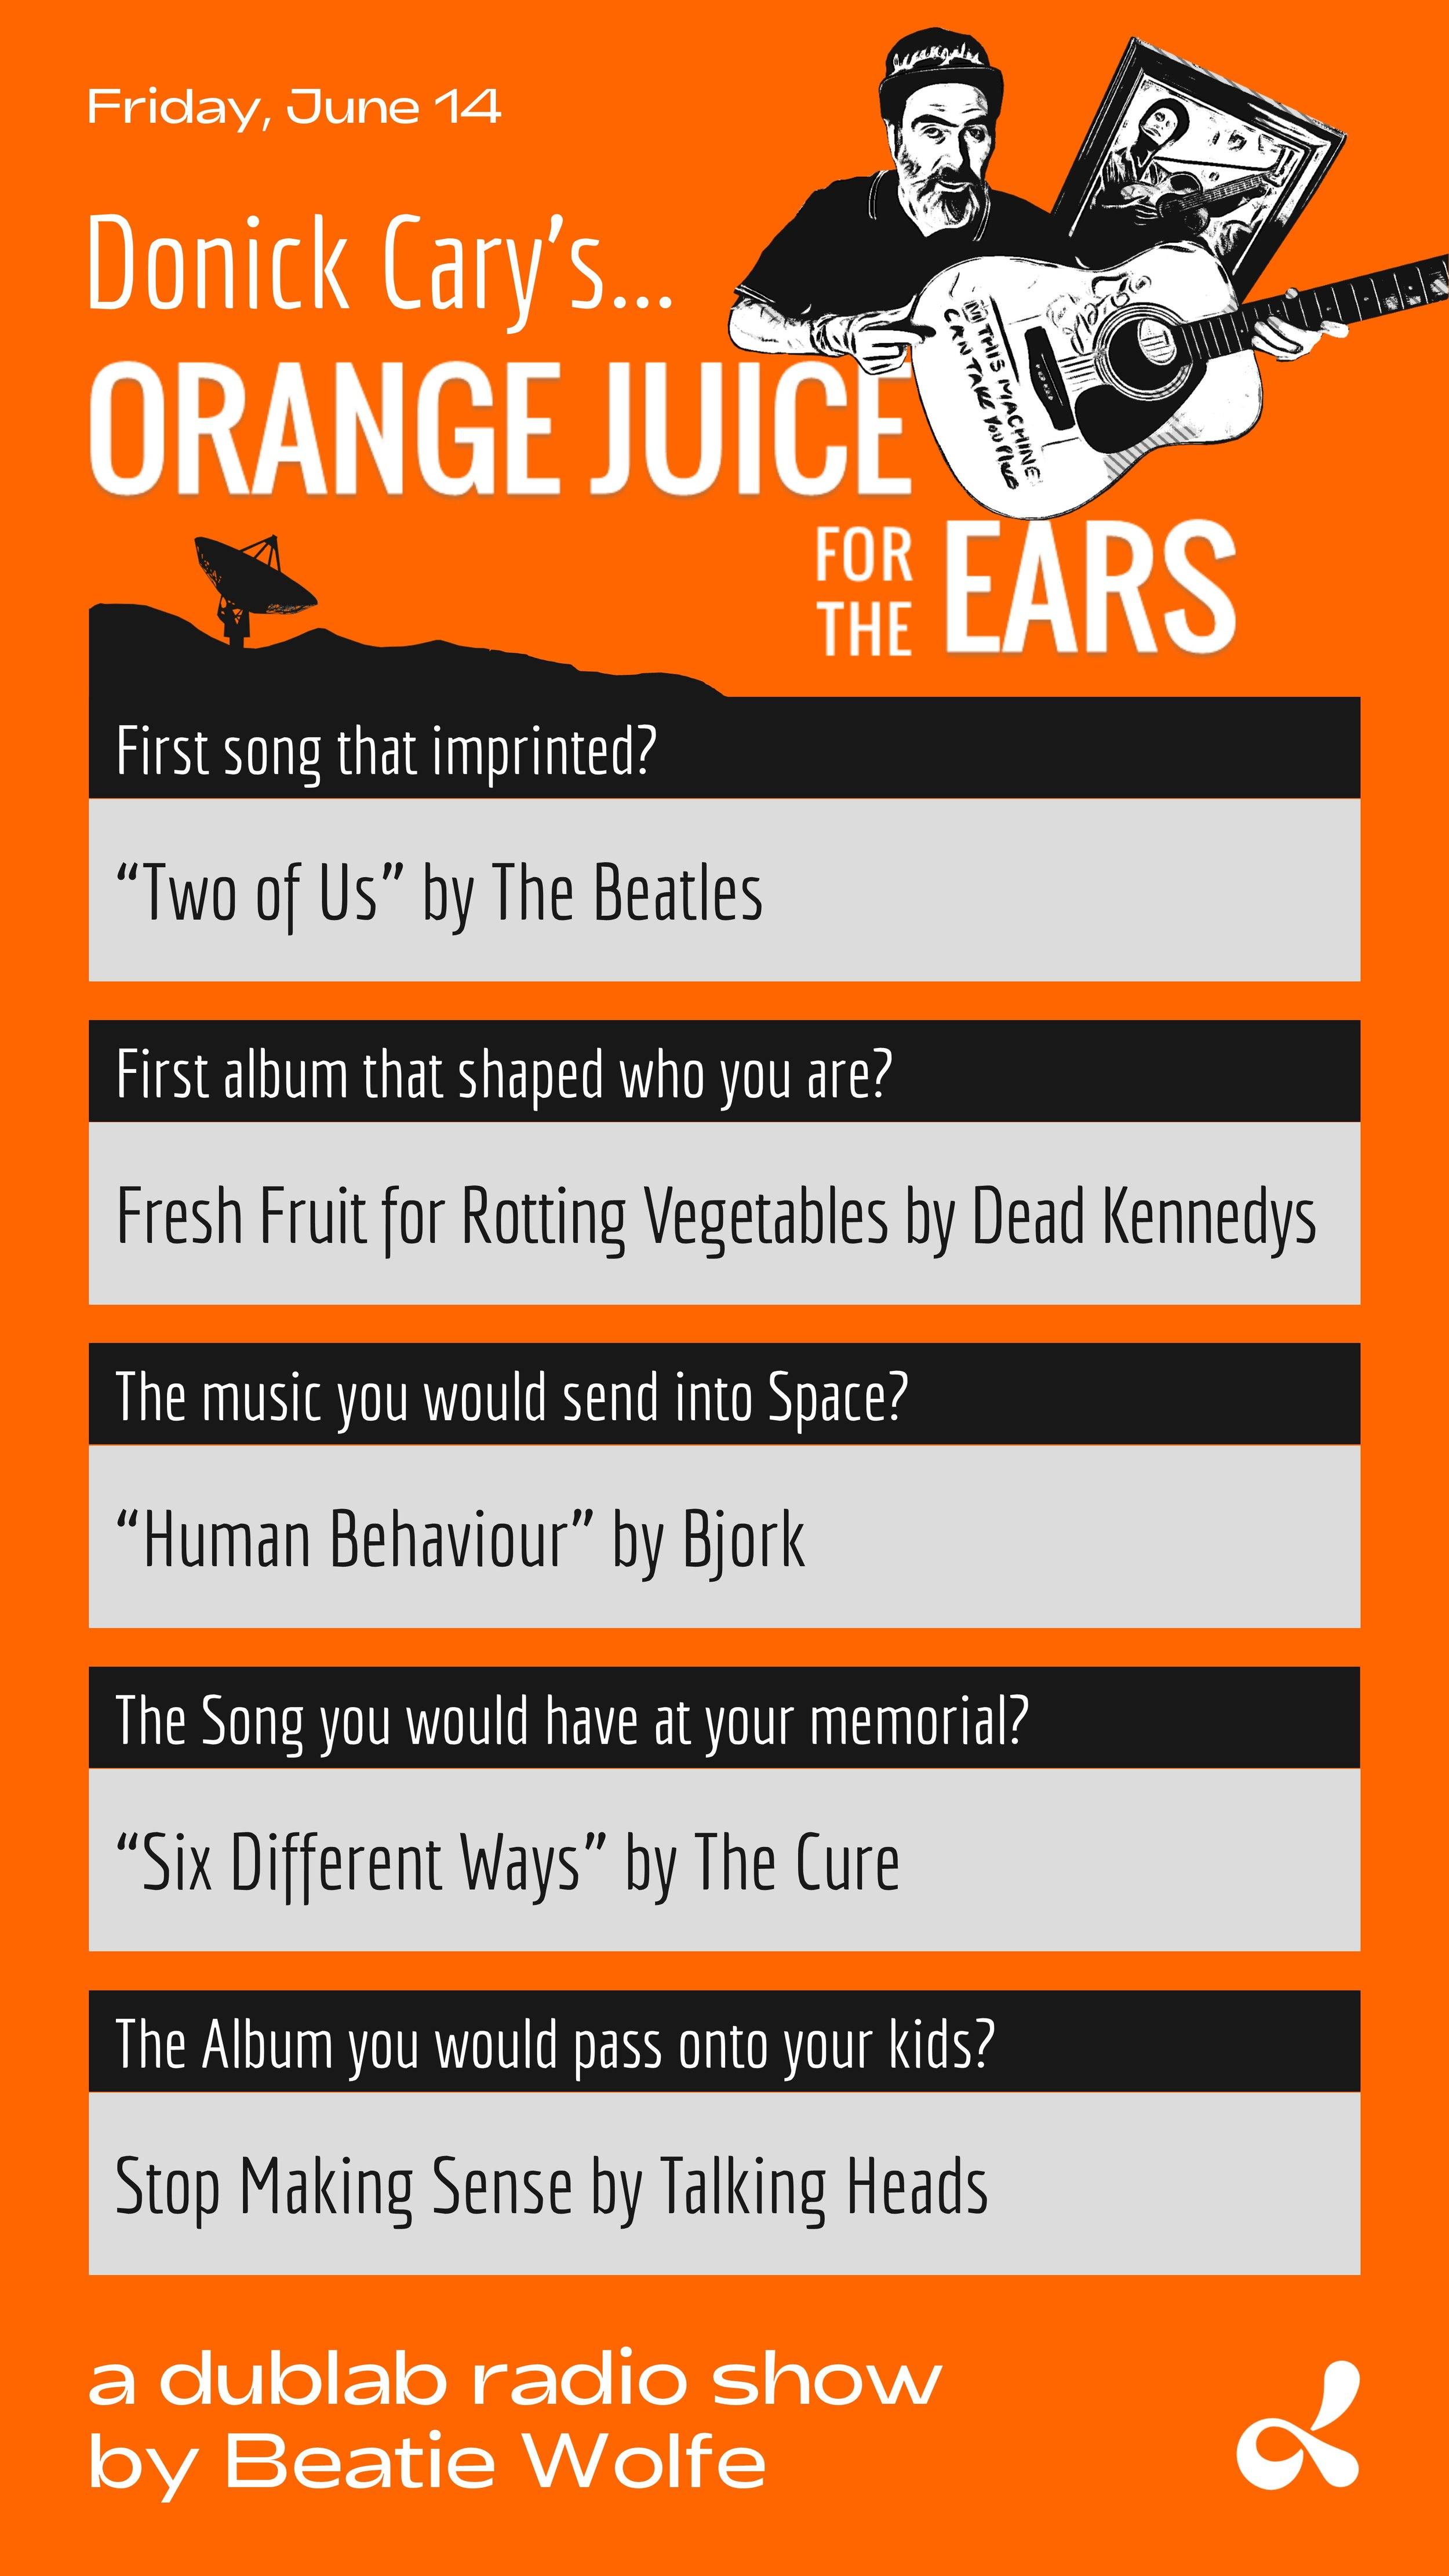 Ear OJ Tracks - Donick Cary - IG Stories - with text.jpg